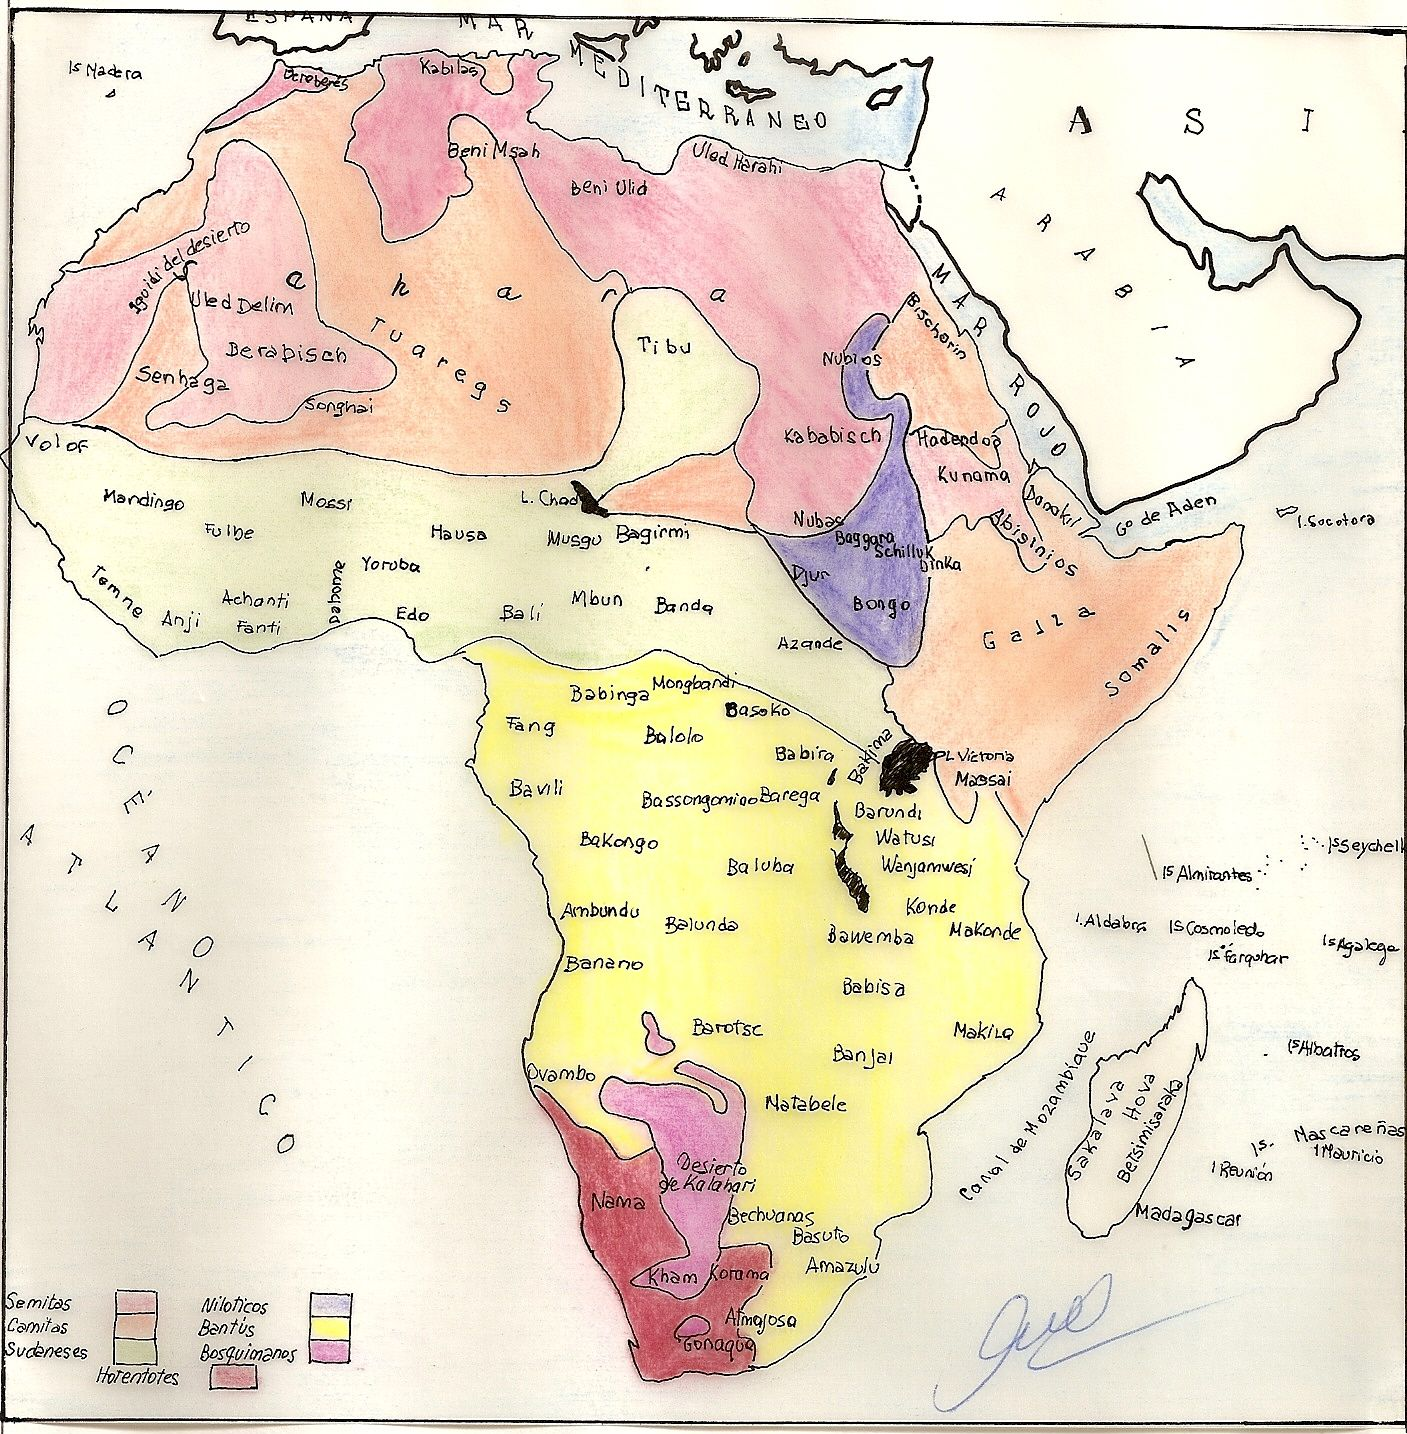 Etnias de Africa | Mapas | Map, Diagram, Africa on countries of africa, blank map of ireland, blank map central america, blank map of world, blank map of the balkan peninsula, large map africa, blank map of each continent, blank europe map, european imperialism in africa, blank map of the eastern mediterranean, blank map of americas, women of africa, capital of africa, blank map of mediterranean region, blank map of oceania, blank asia map, blank map of the middle east, blank map of arizona, geographic features of africa,